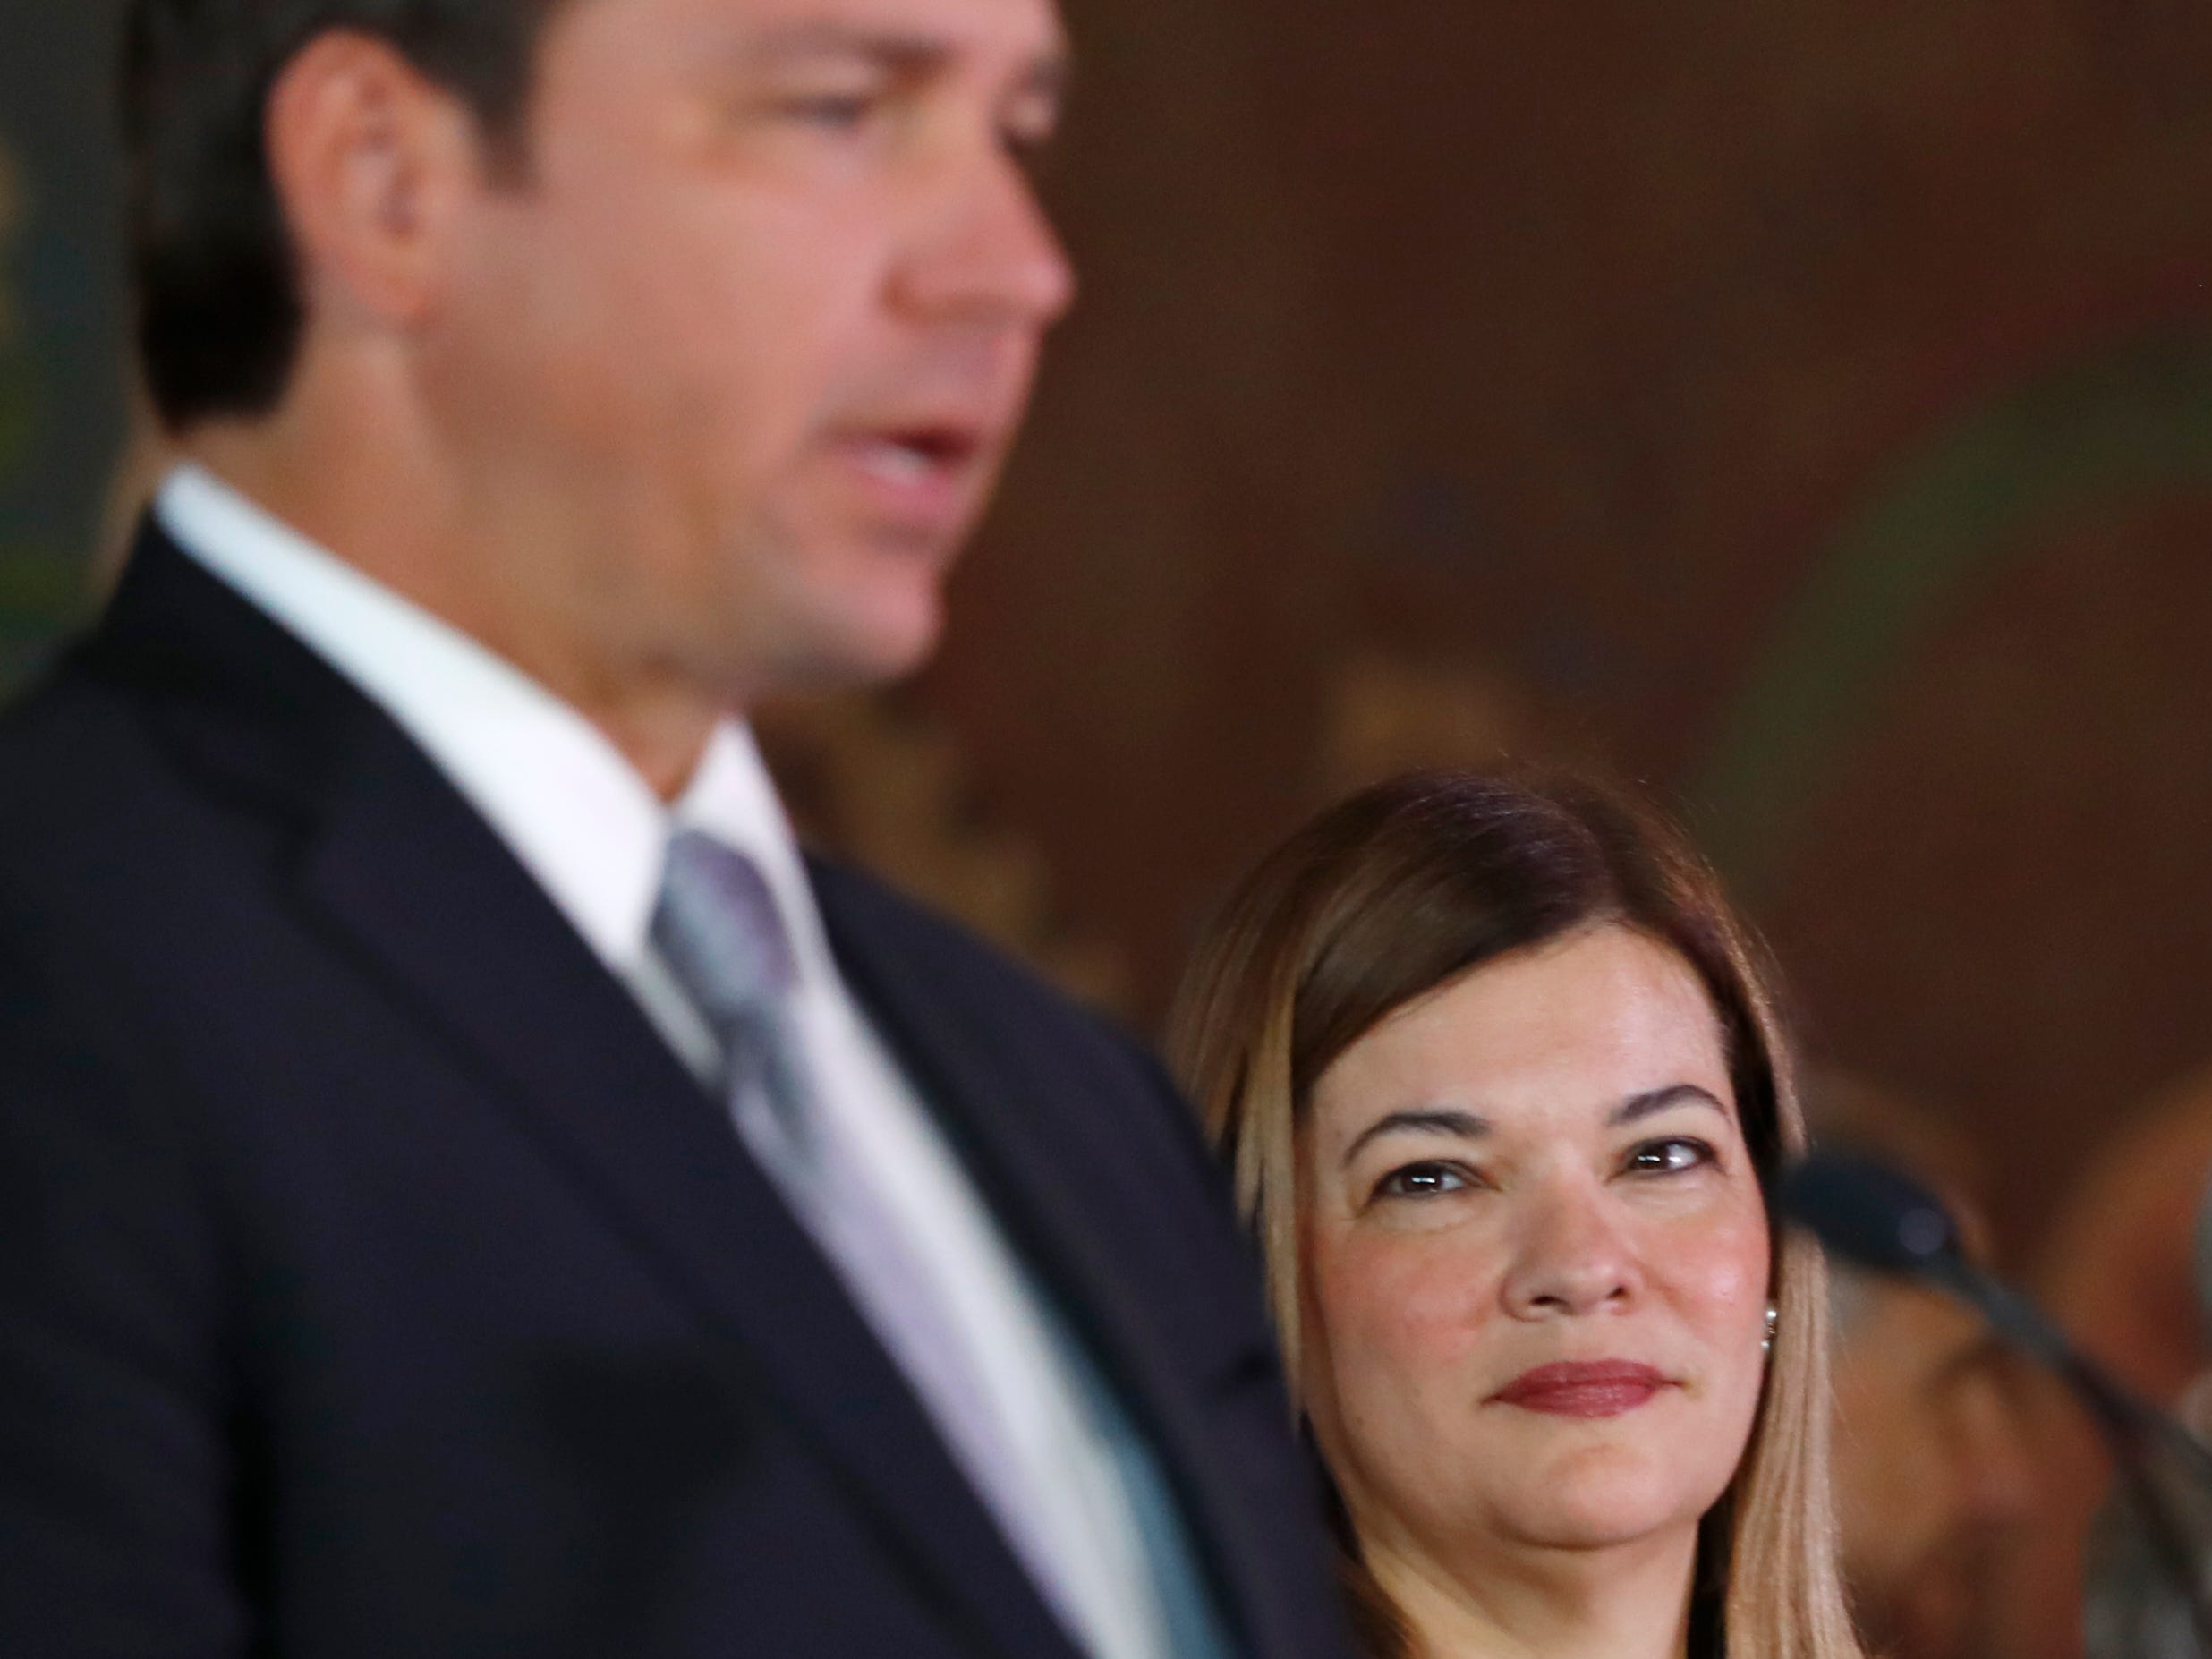 Barbara Lagoa, right, looks on as Governor Ron DeSantis introduces her as his pick for the Florida Supreme Court, Wednesday, Jan. 9, 2019, in Miami.